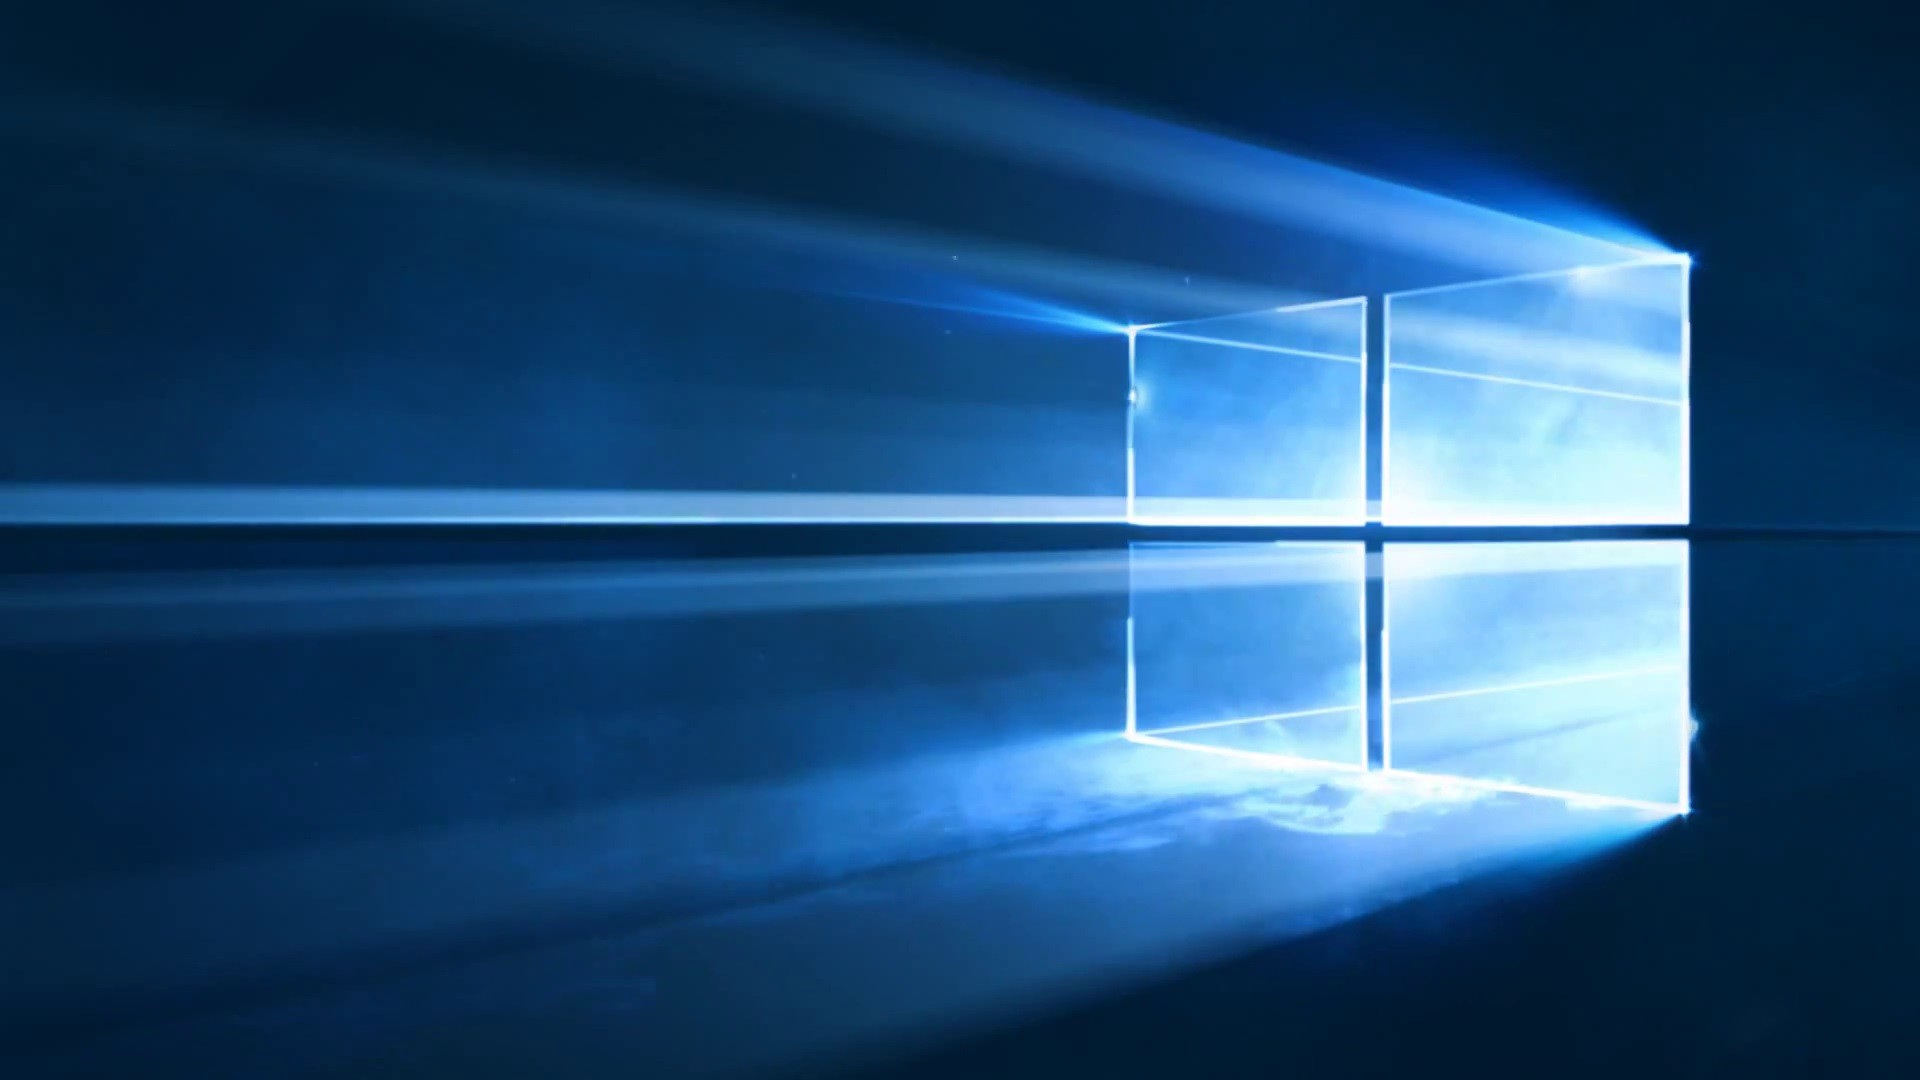 What Are New Features of Windows 10